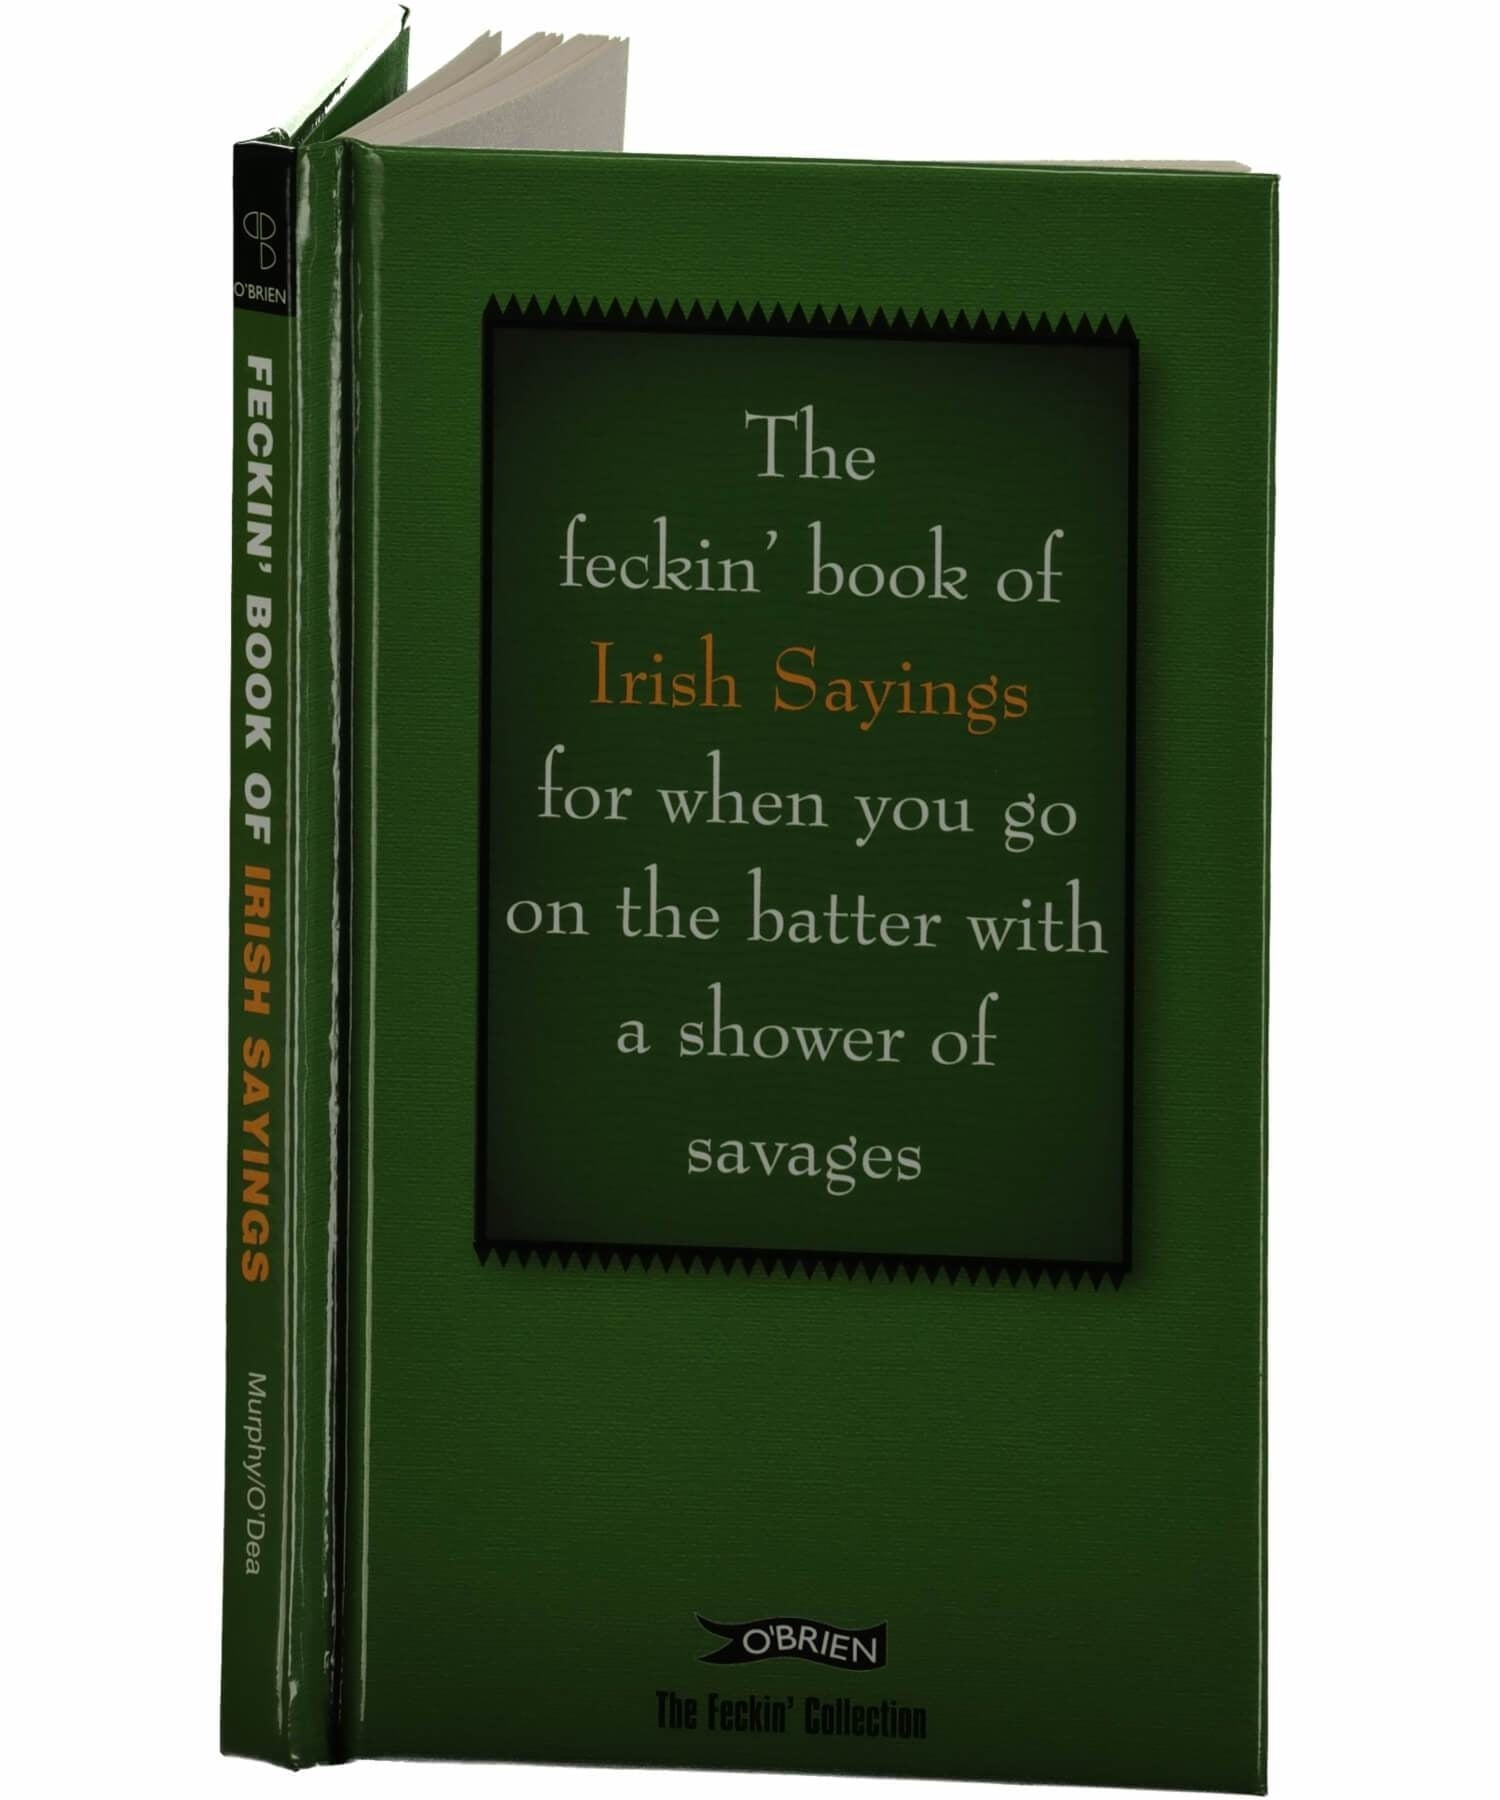 Feckin' Collection: Irish Sayings - [The O'Brien Press] - Books & Stationery - Irish Gifts